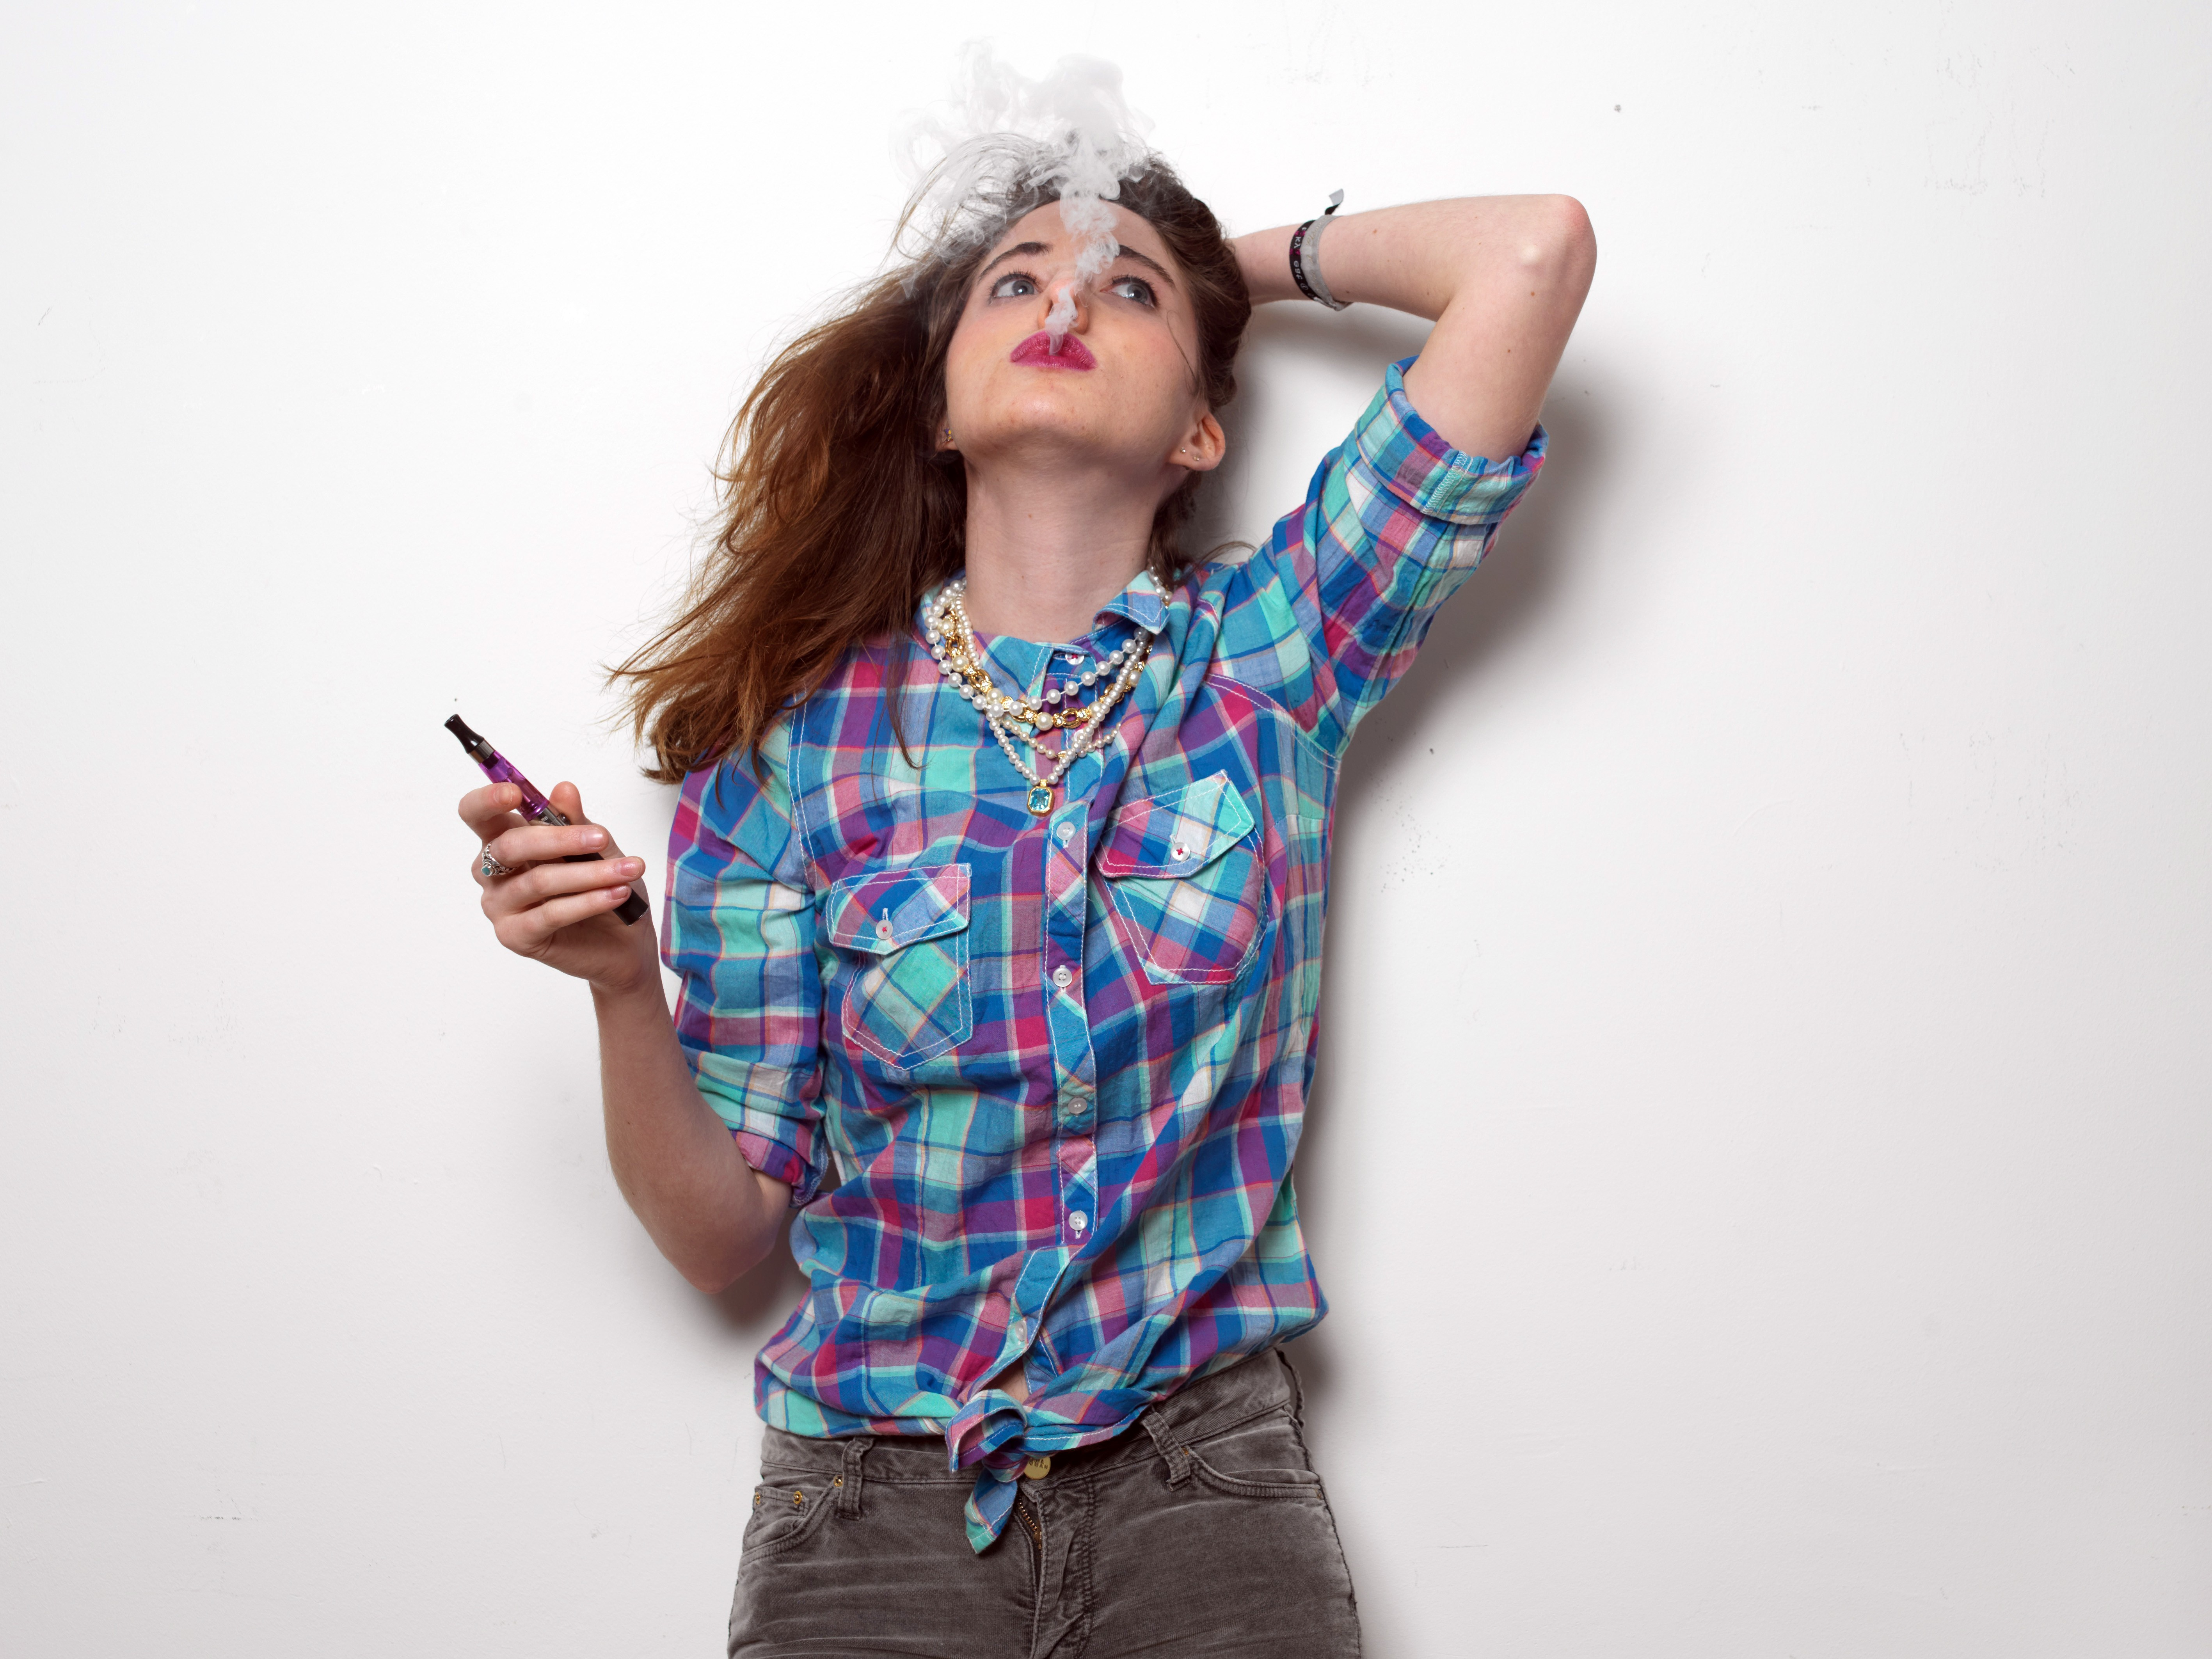 YOUNG GIRL AGED 20 SMOKING ELECTRONIC CIGARETTE